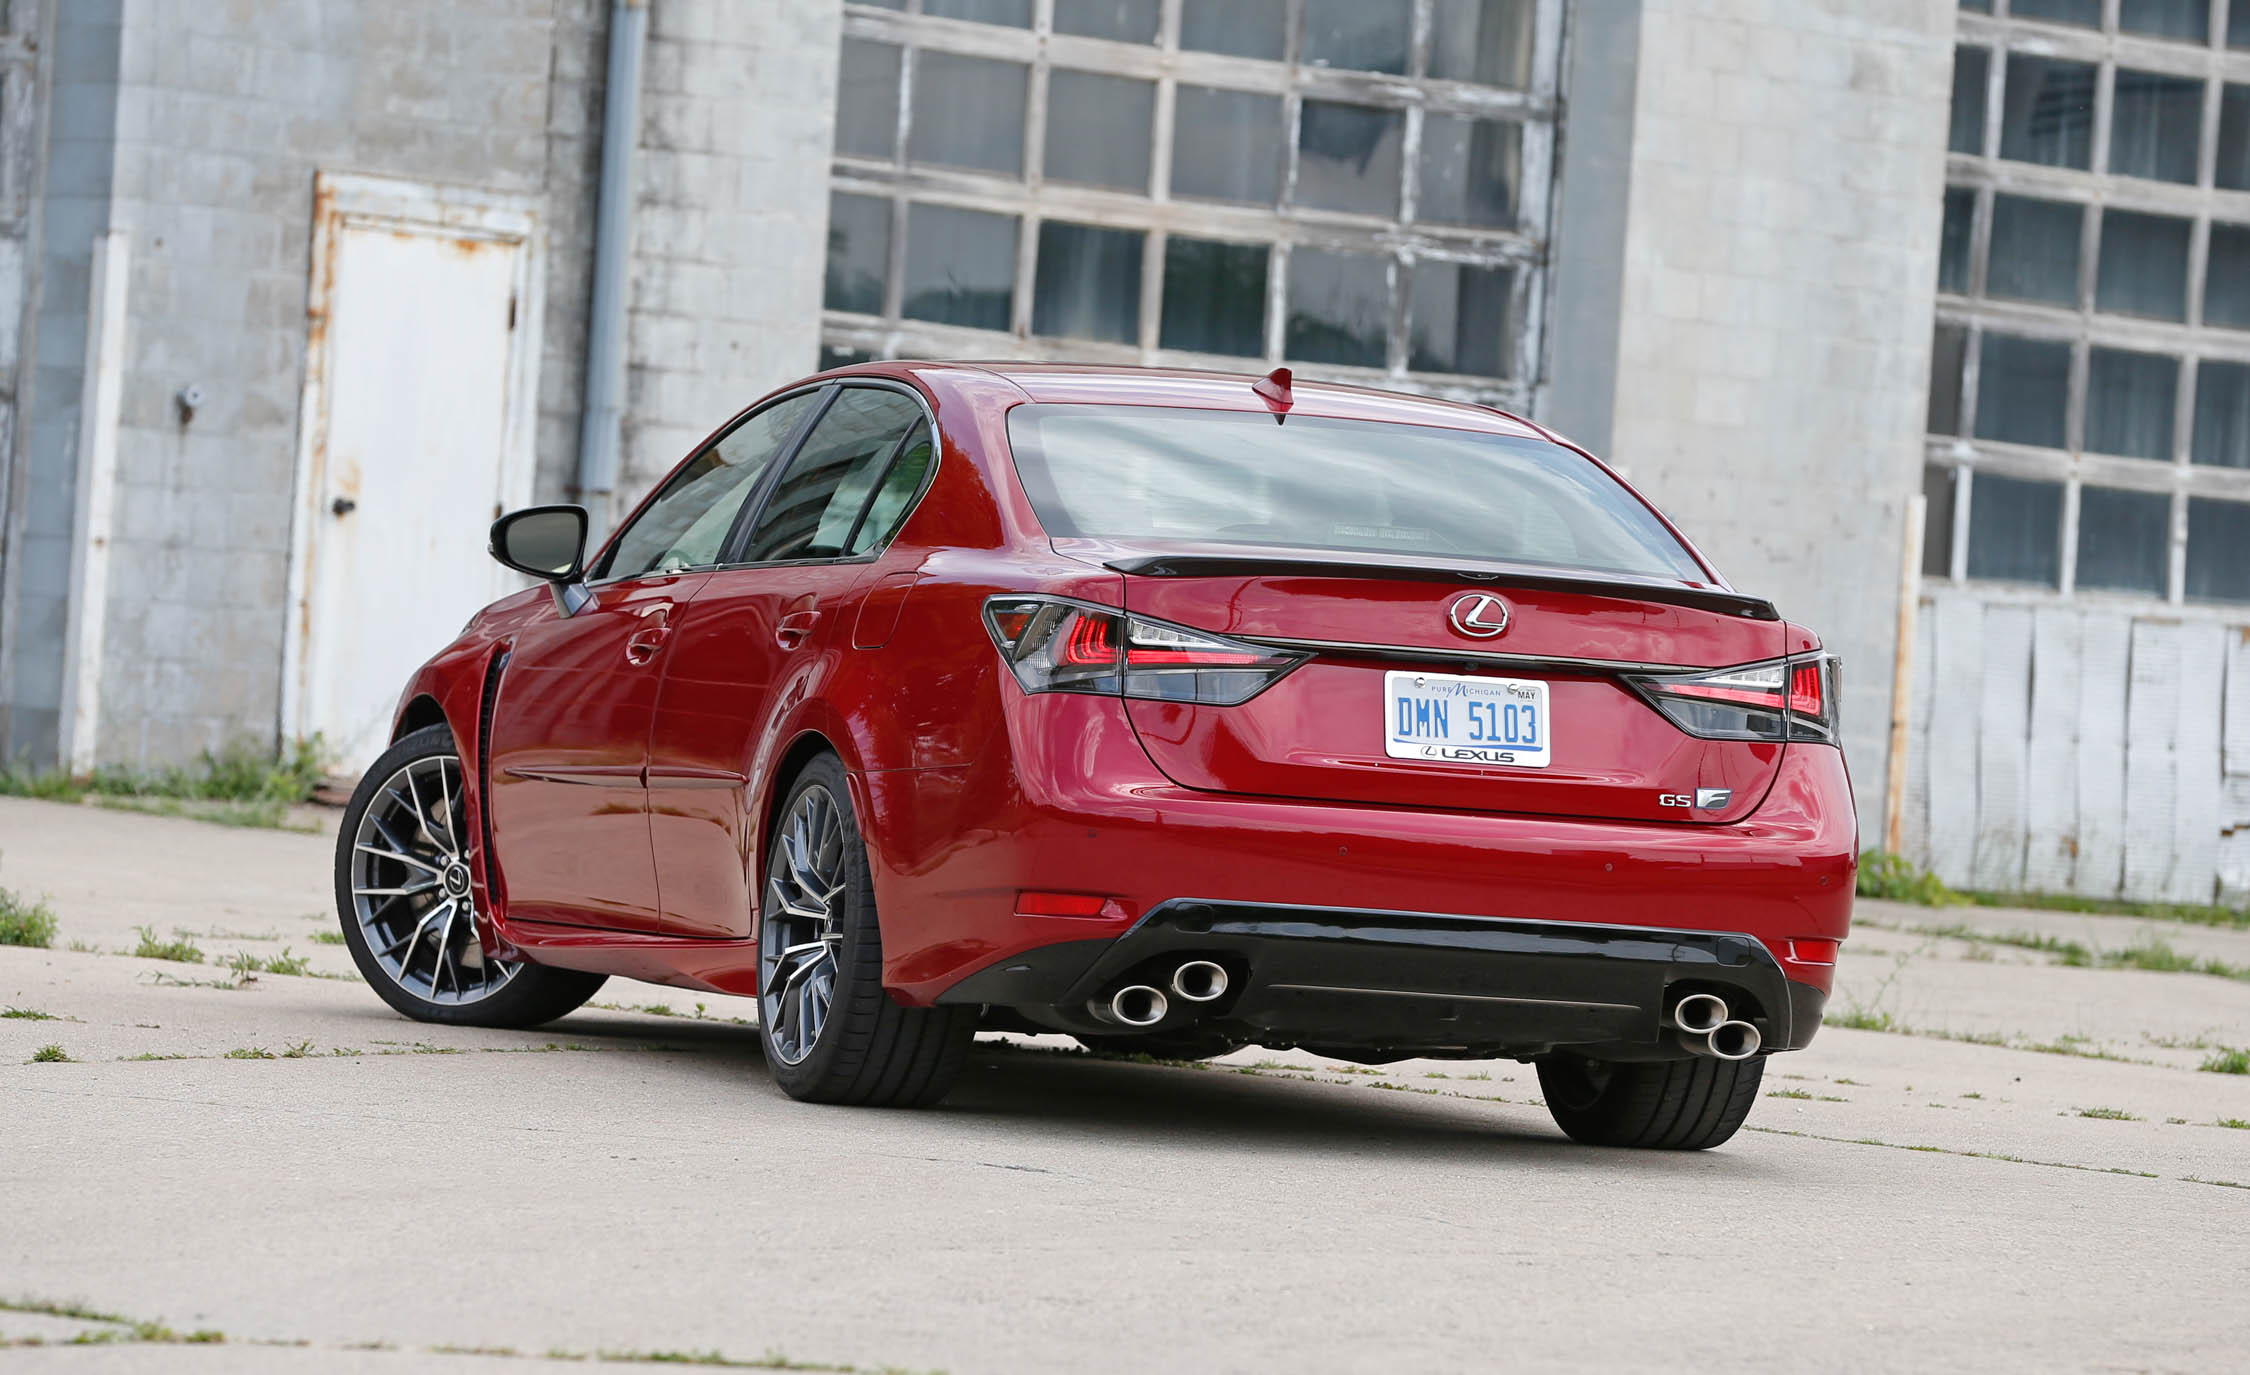 2016 Lexus Gs F Exterior Rear (Photo 5 of 20)